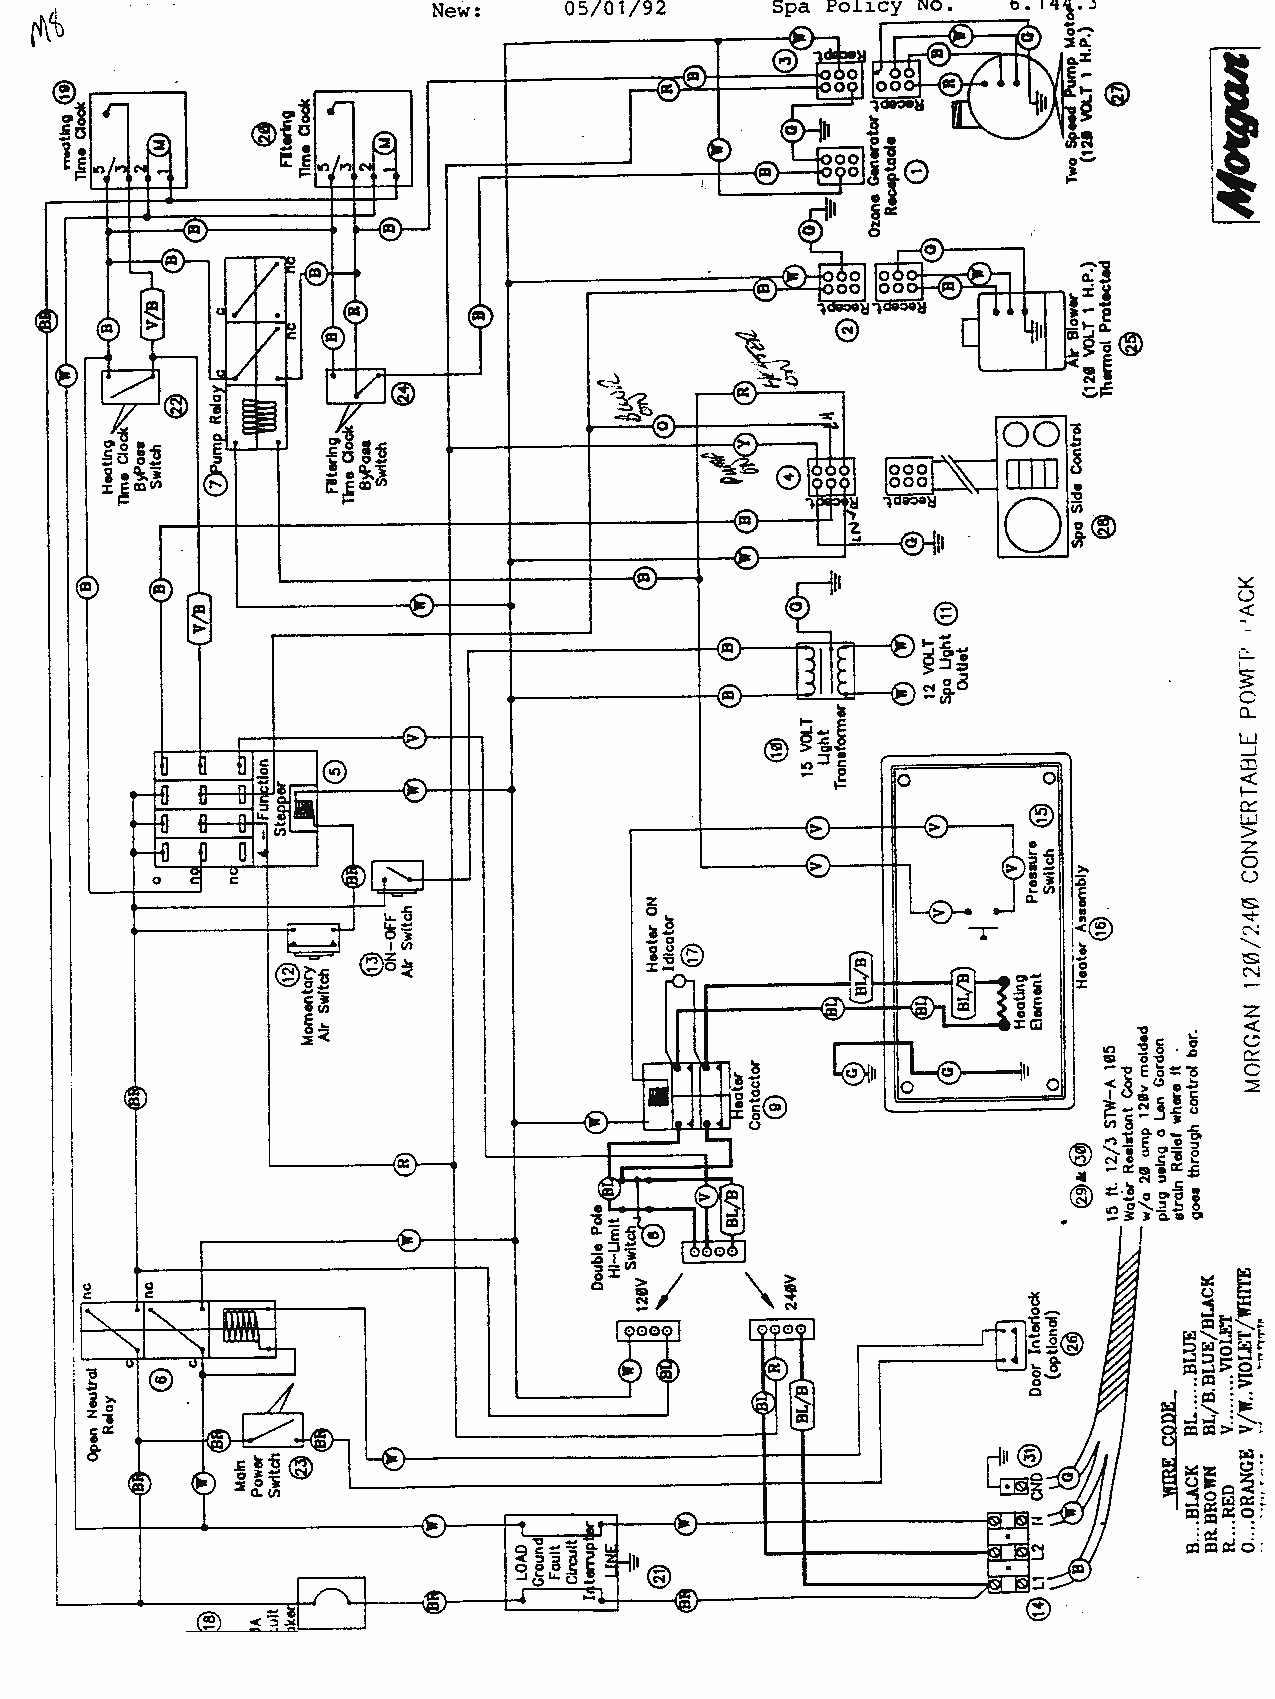 hot tub wiring schematic